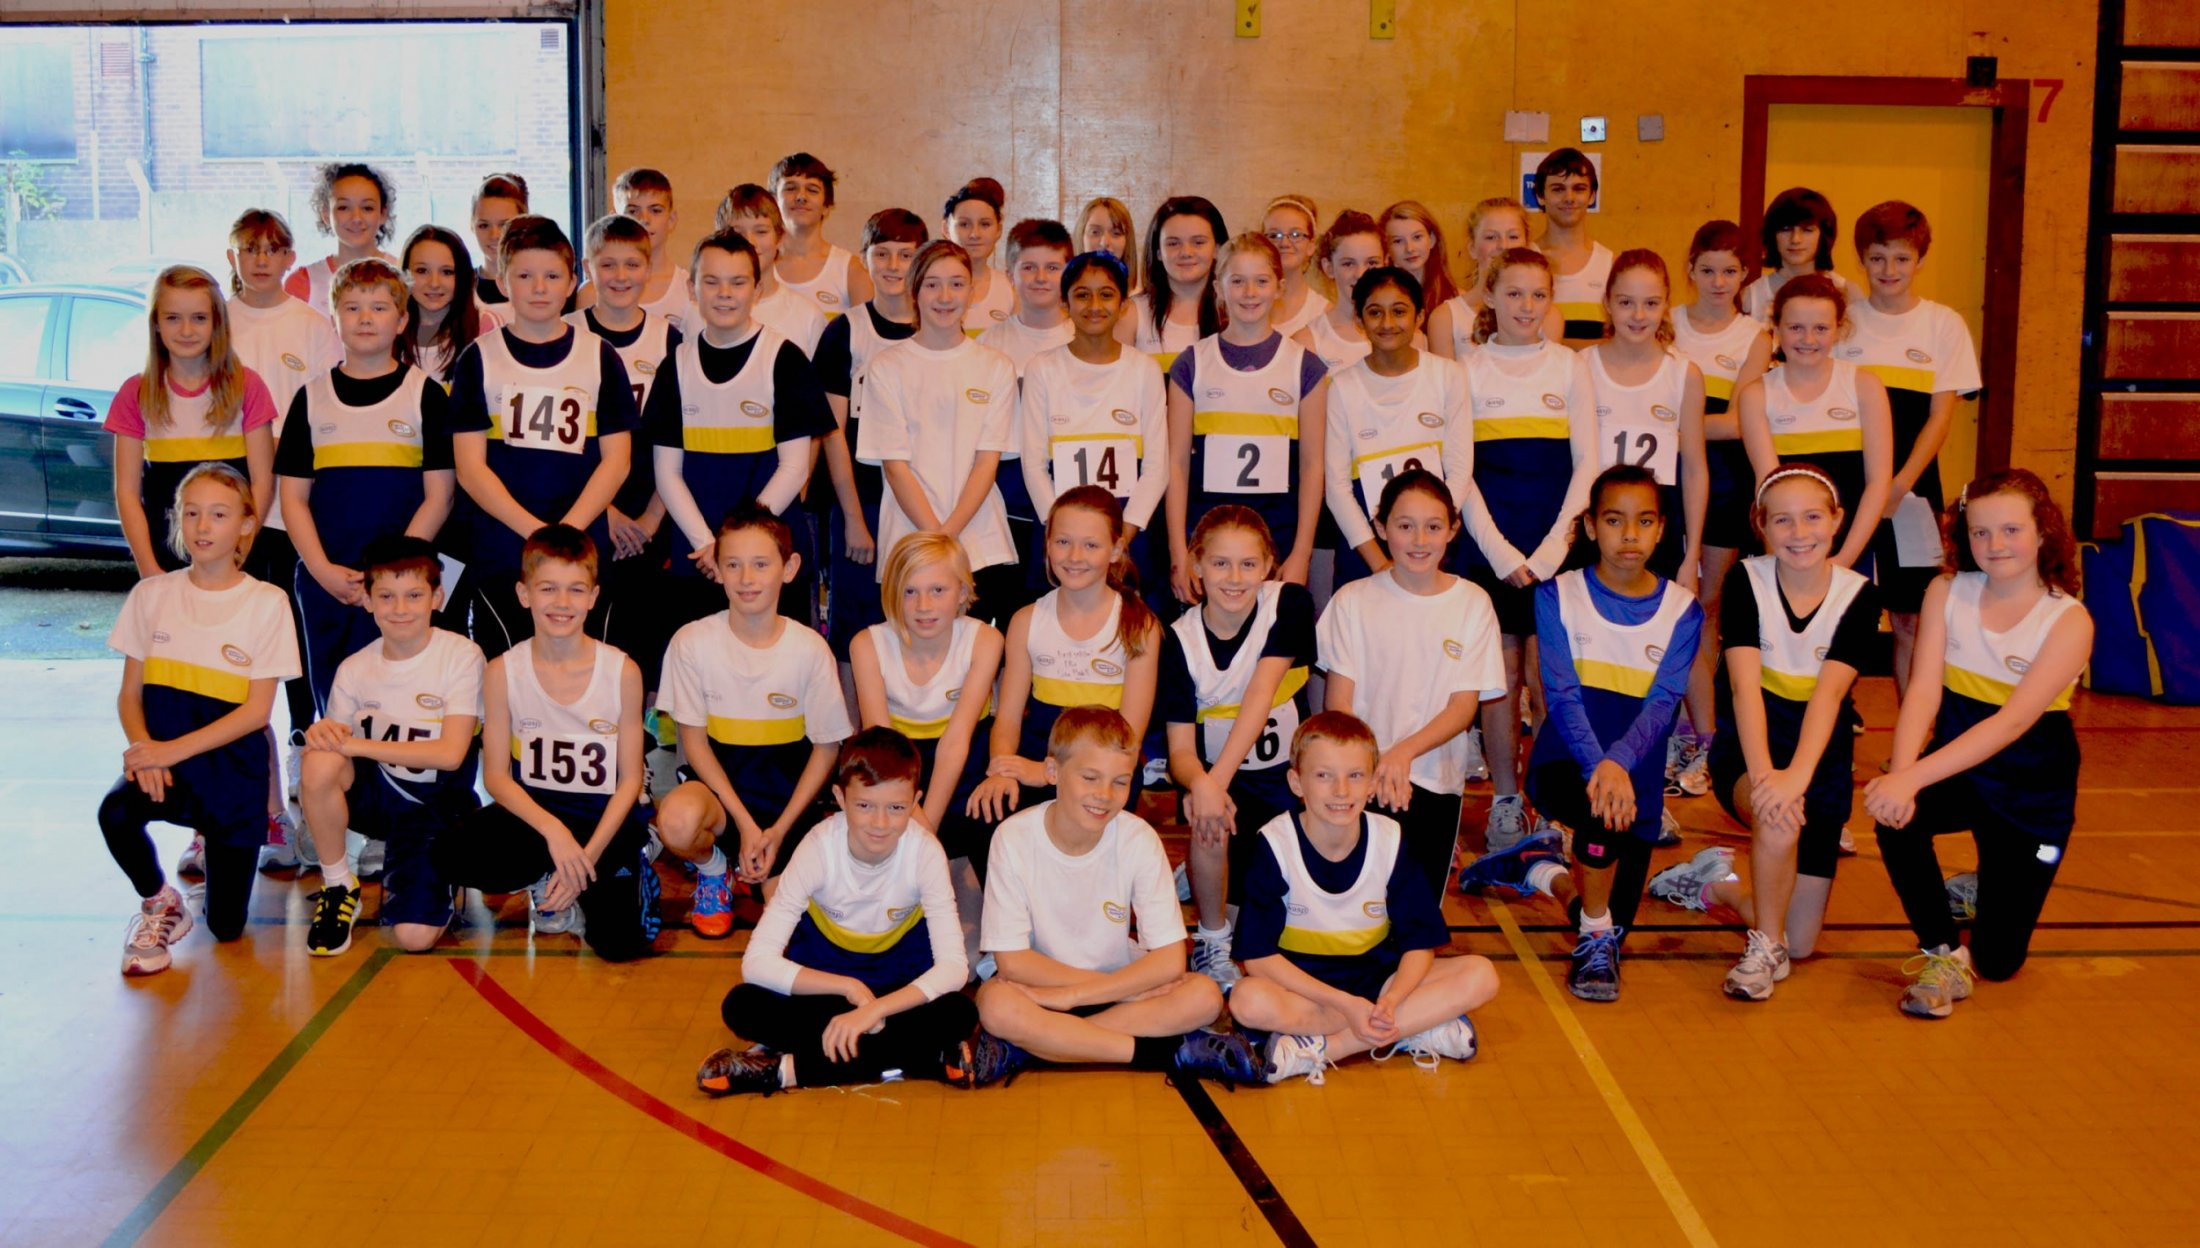 Cnac Team Widnes Sportshall 181112 Photo Courtsey Of Ian Williamson-3197